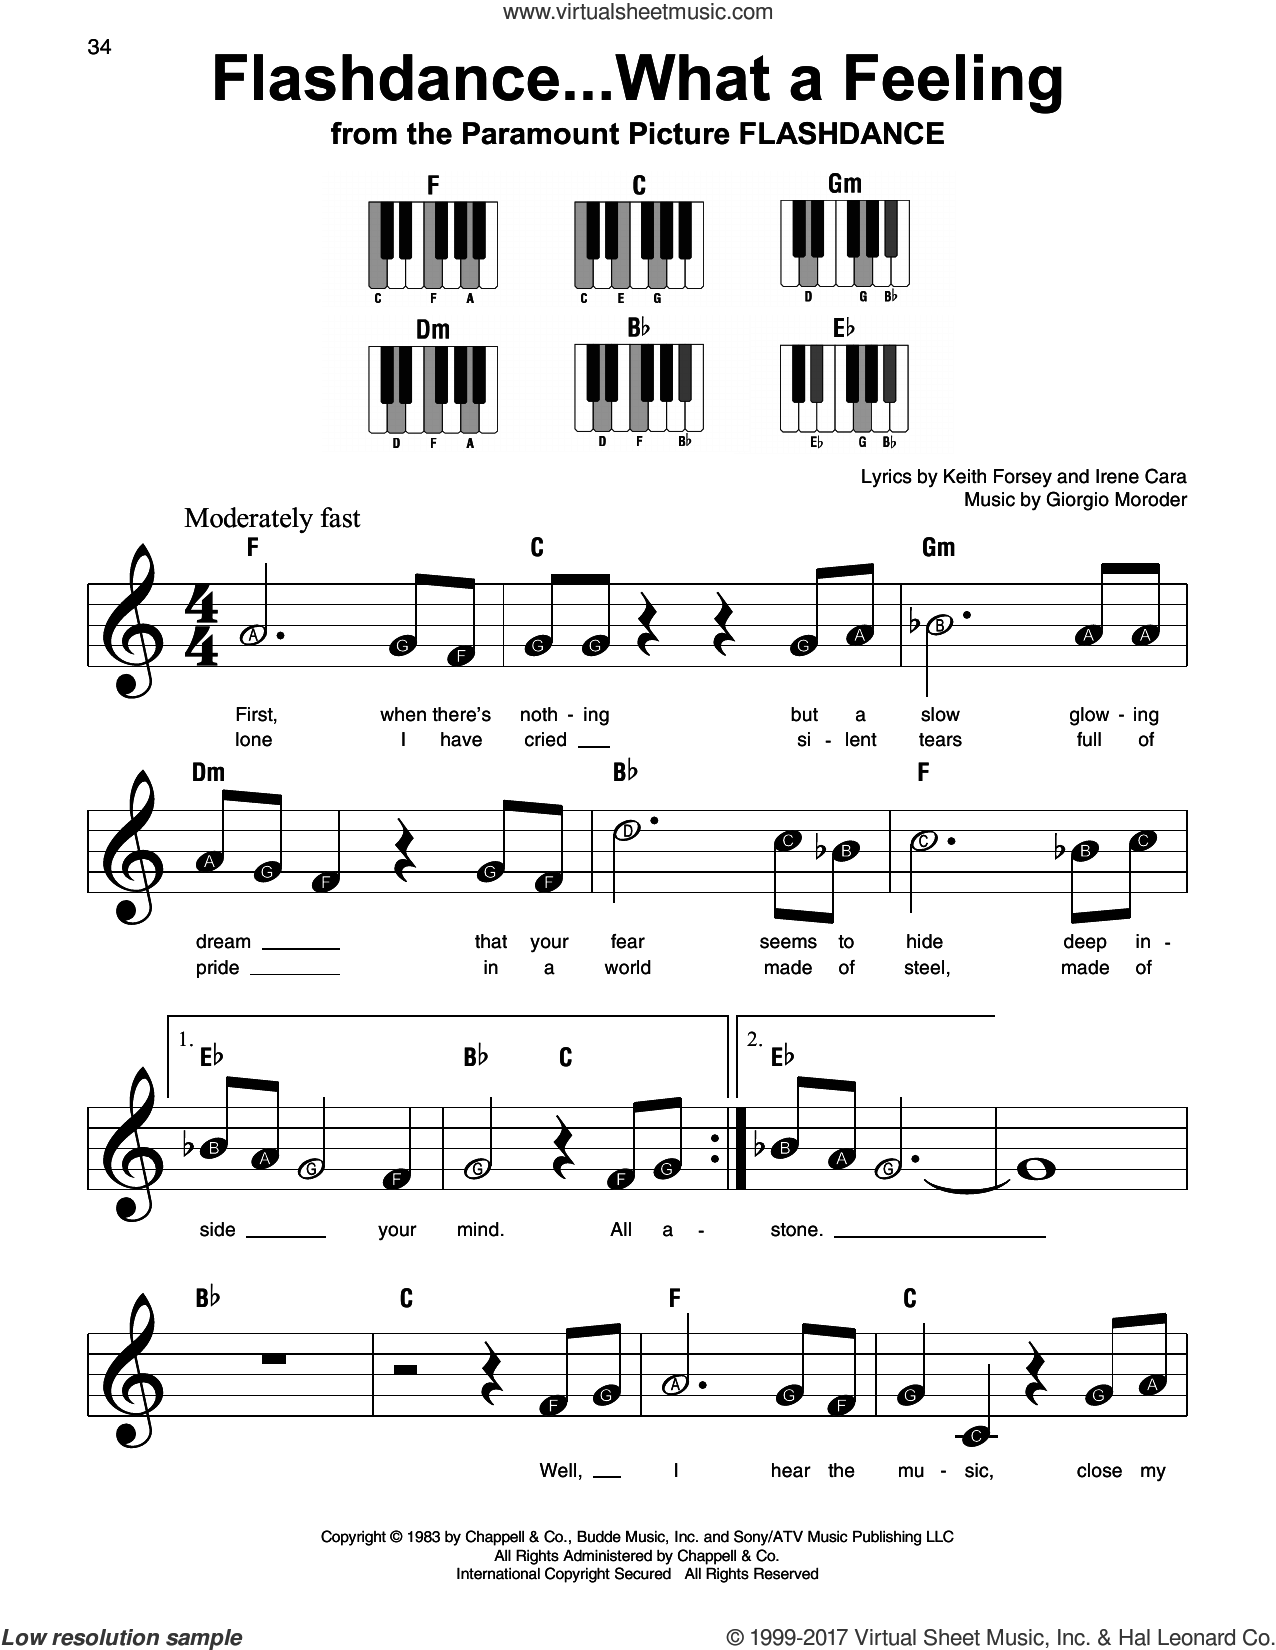 Flashdance...What A Feeling sheet music for piano solo by Irene Cara, Giorgio Moroder and Keith Forsey, beginner skill level